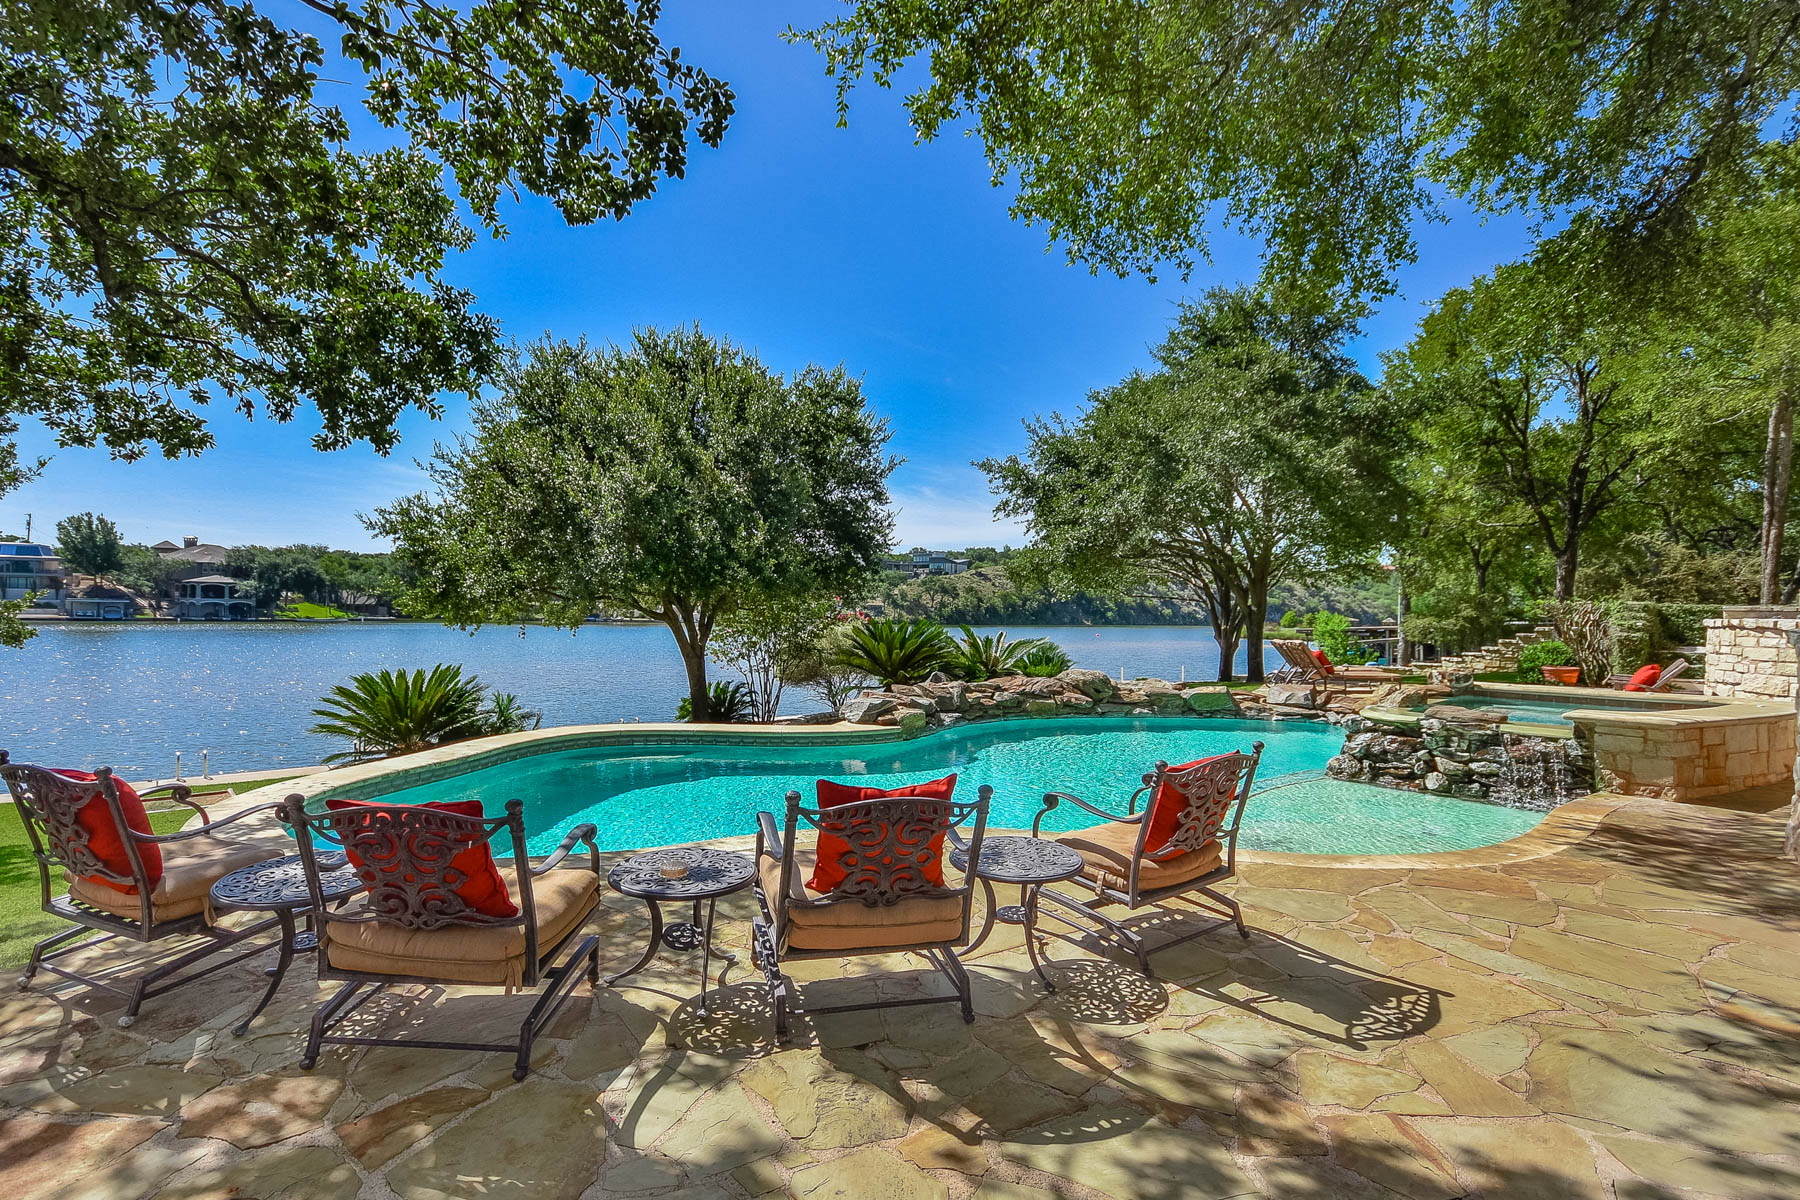 Single Family Home for Sale at Lake LBJ Family Compound of 3 Lake Houses on 722' of Waterfront 814 Sunrise Ln Sunrise Beach, Texas 78643 United States